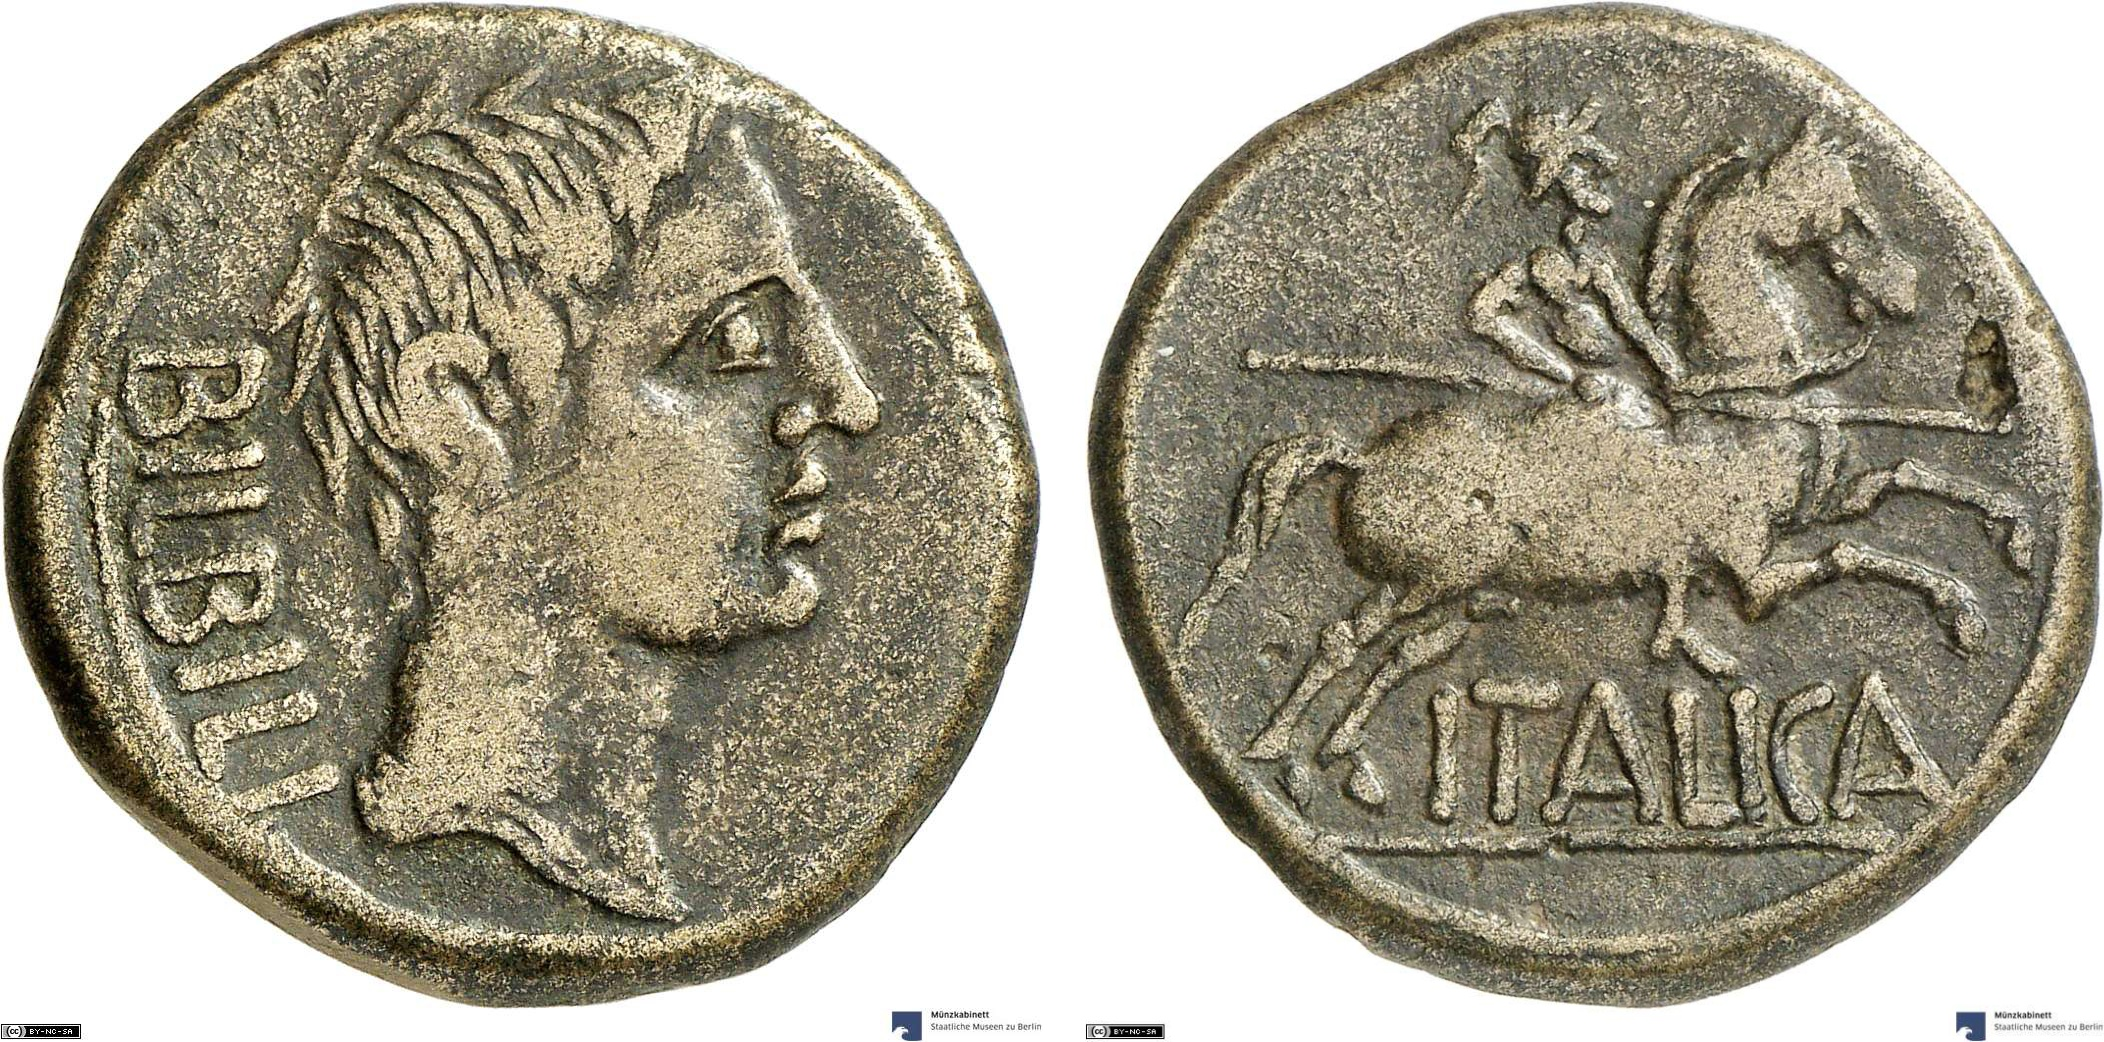 As showing a horseman on reverse, minted in 27 BC-14 AD under Augustus, Roman Empire